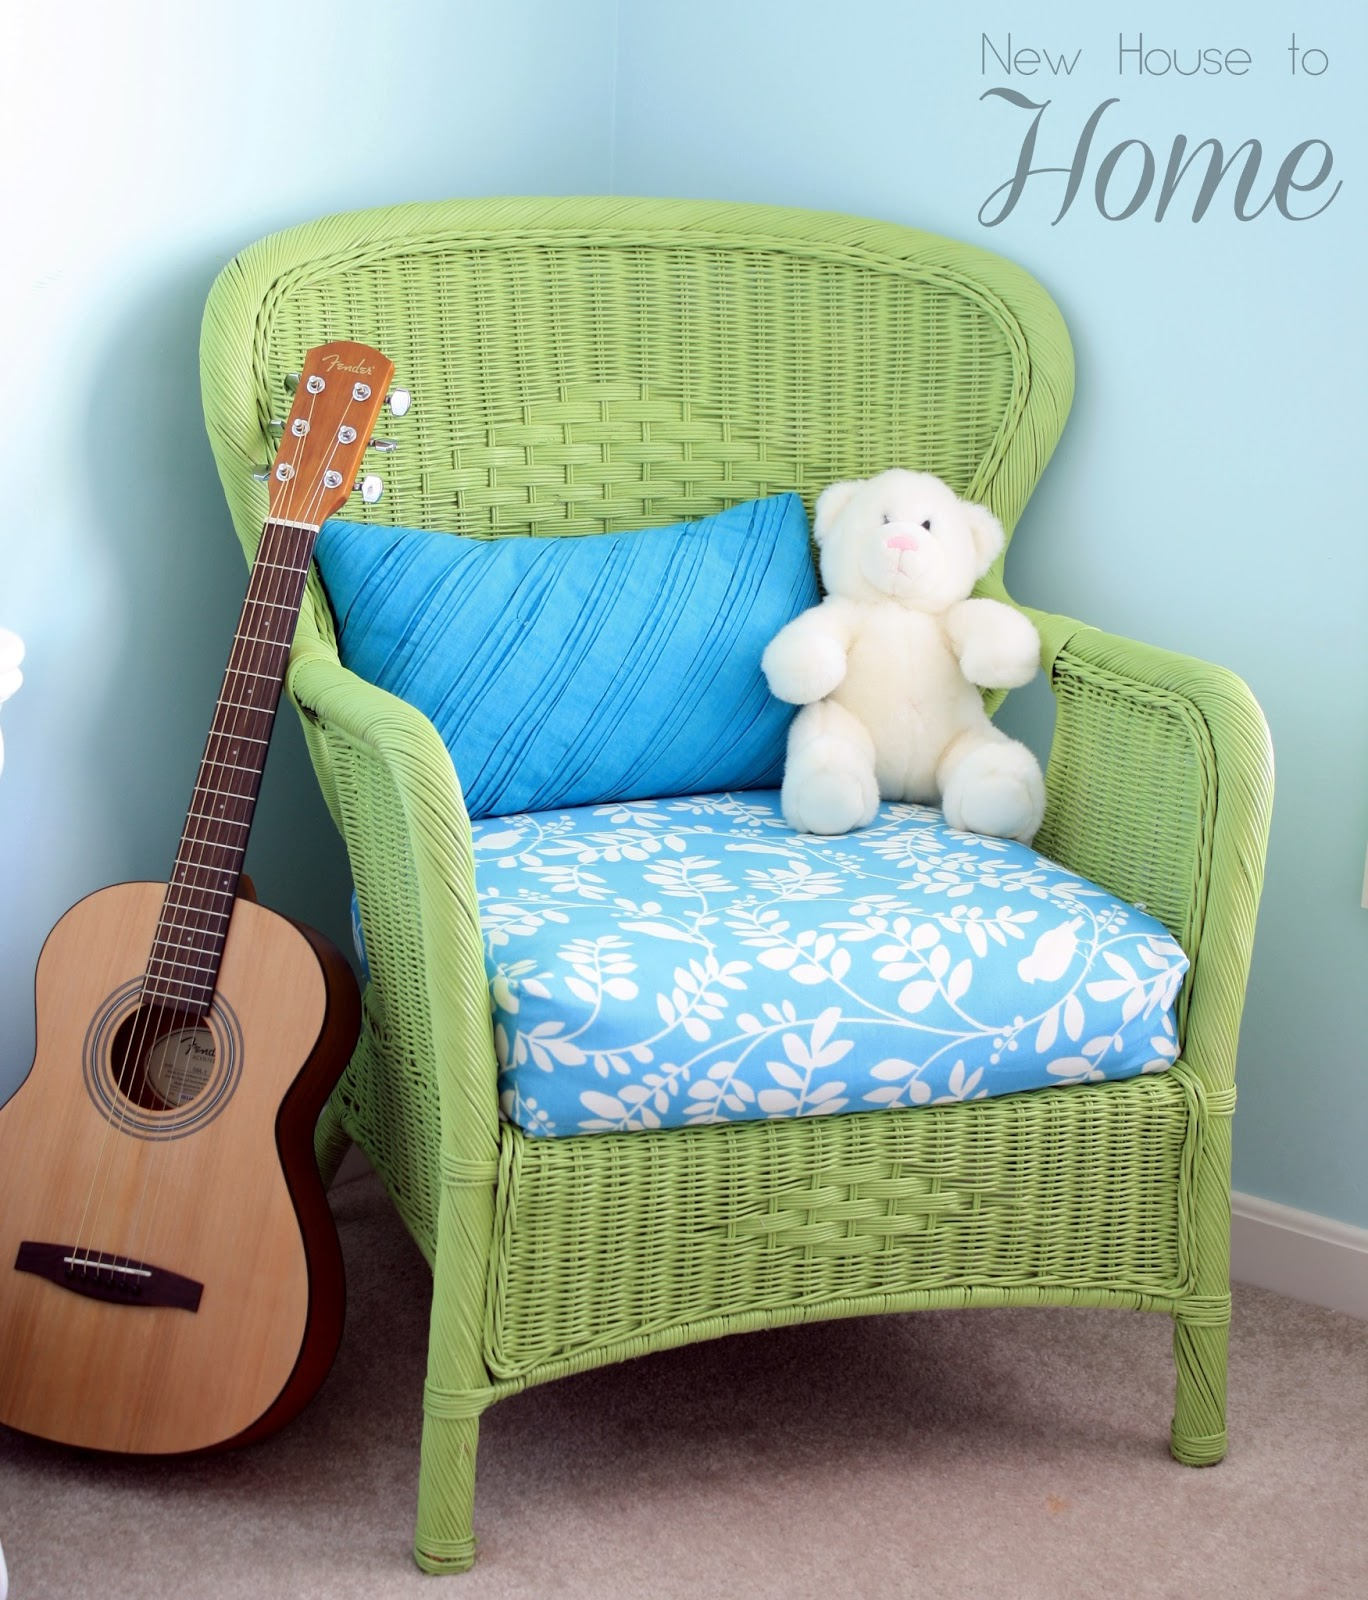 Girly Bedroom Chairs: Bedroom Ideas For Teenage Girls